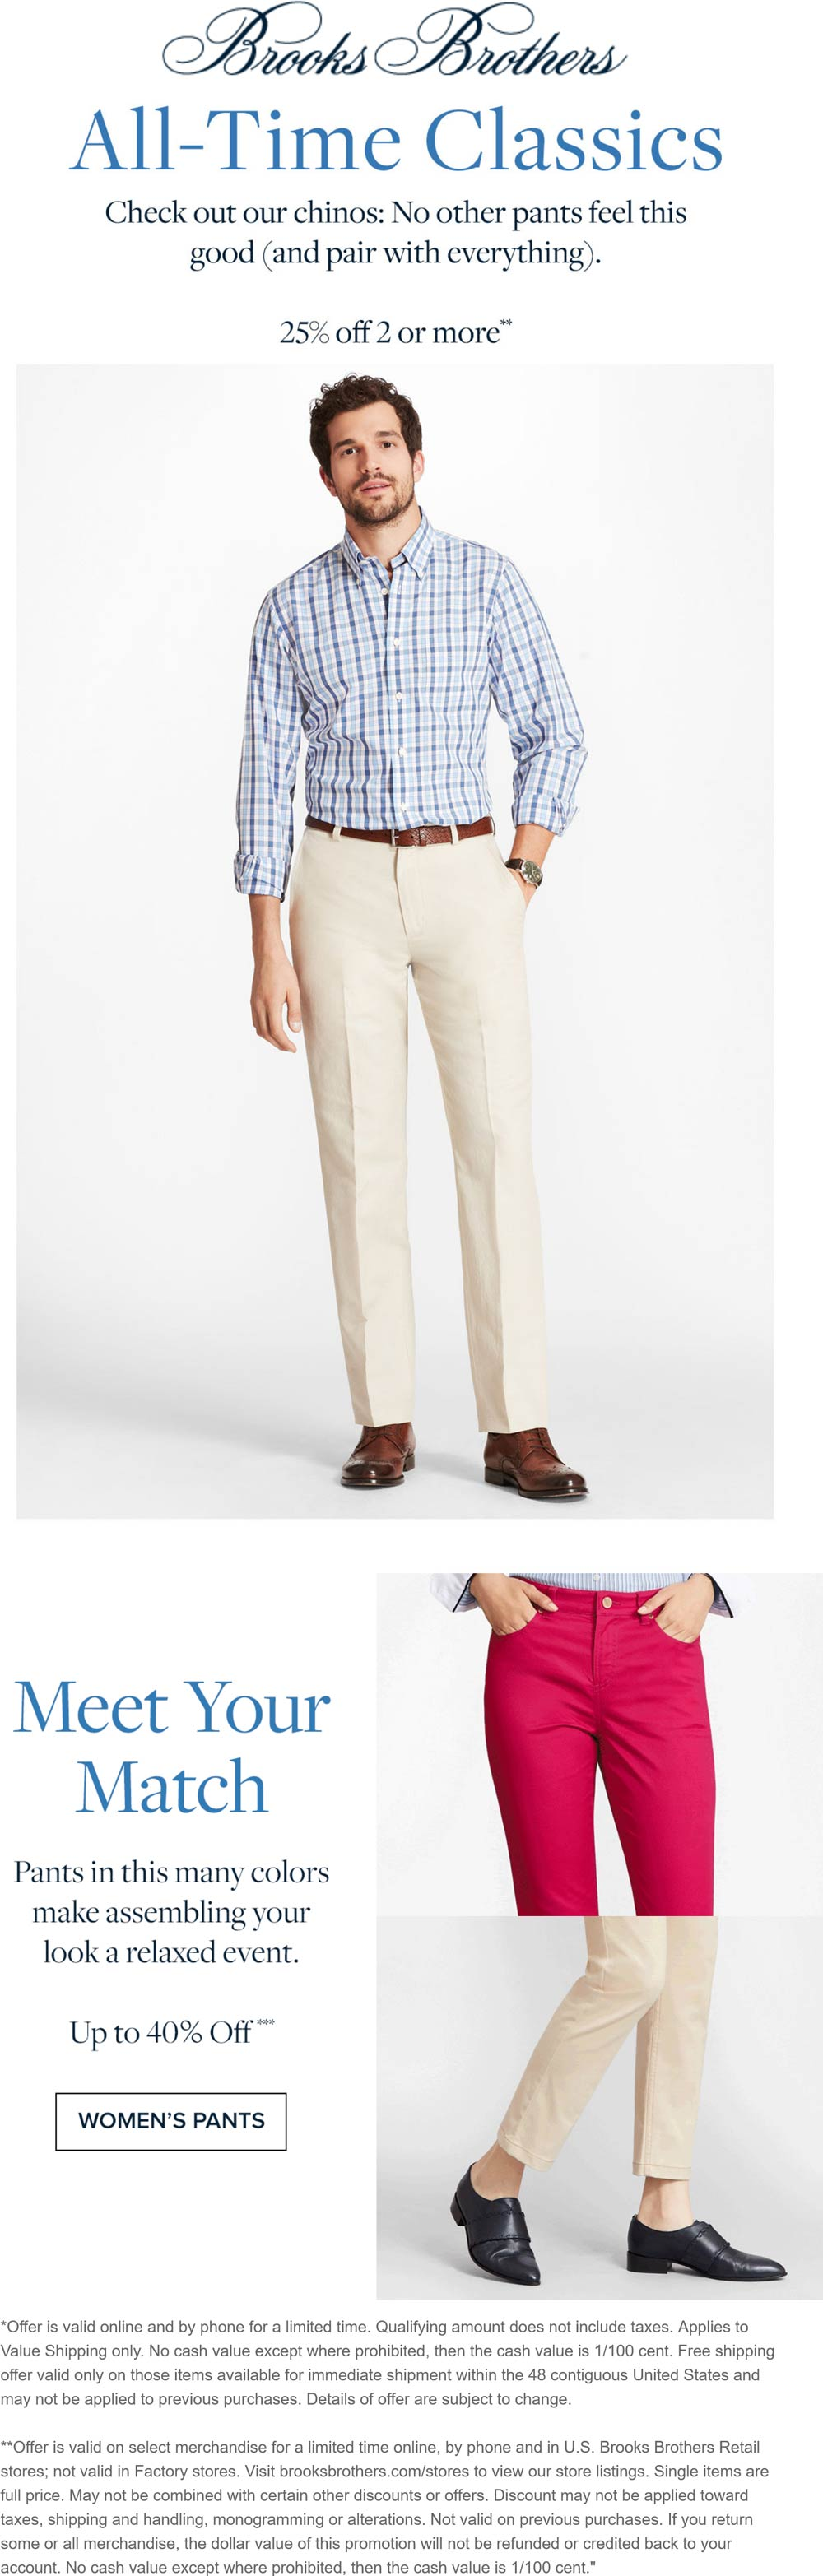 Brooks Brothers stores Coupon  25% off 2+ chino pants at Brooks Brothers, ditto online #brooksbrothers